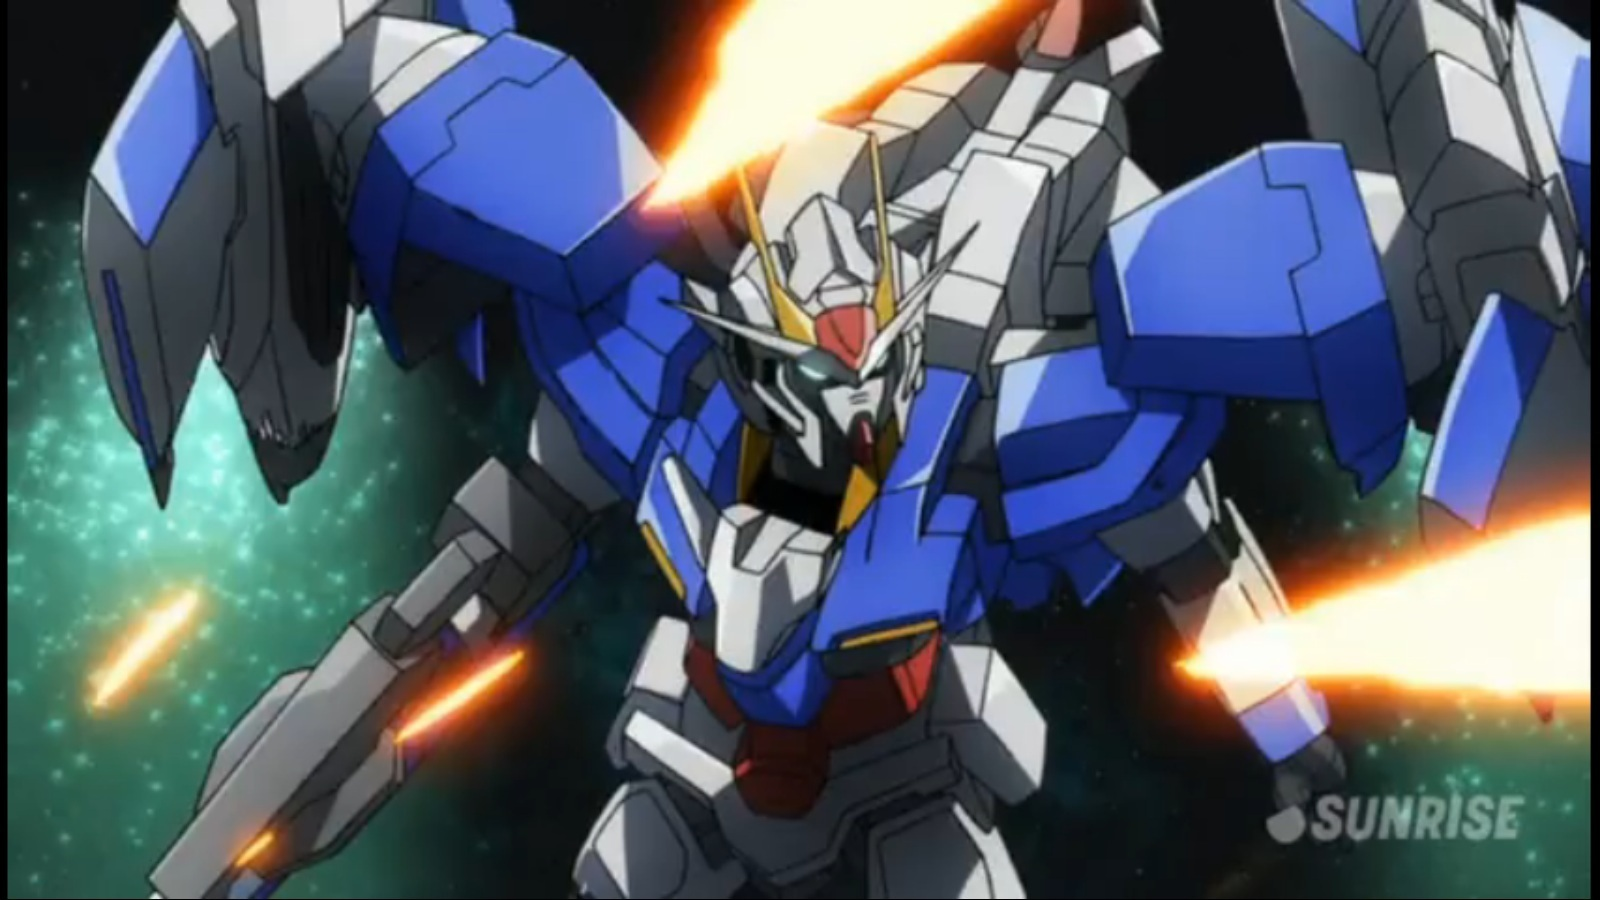 mobile suit gundam 00 Gundam 00